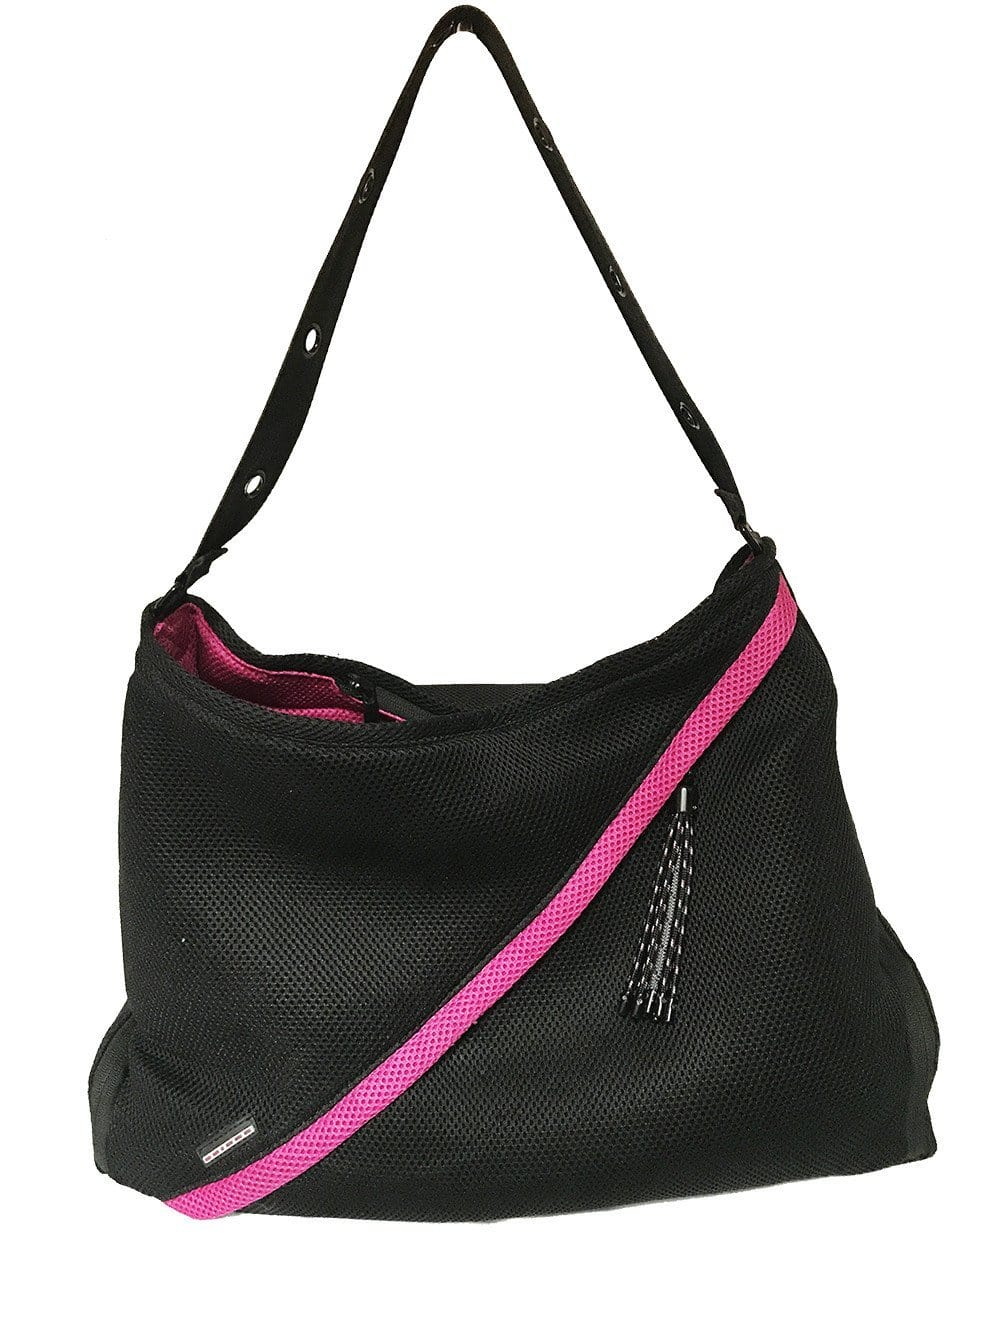 Dash Dash Dot Infinity Bag Pink